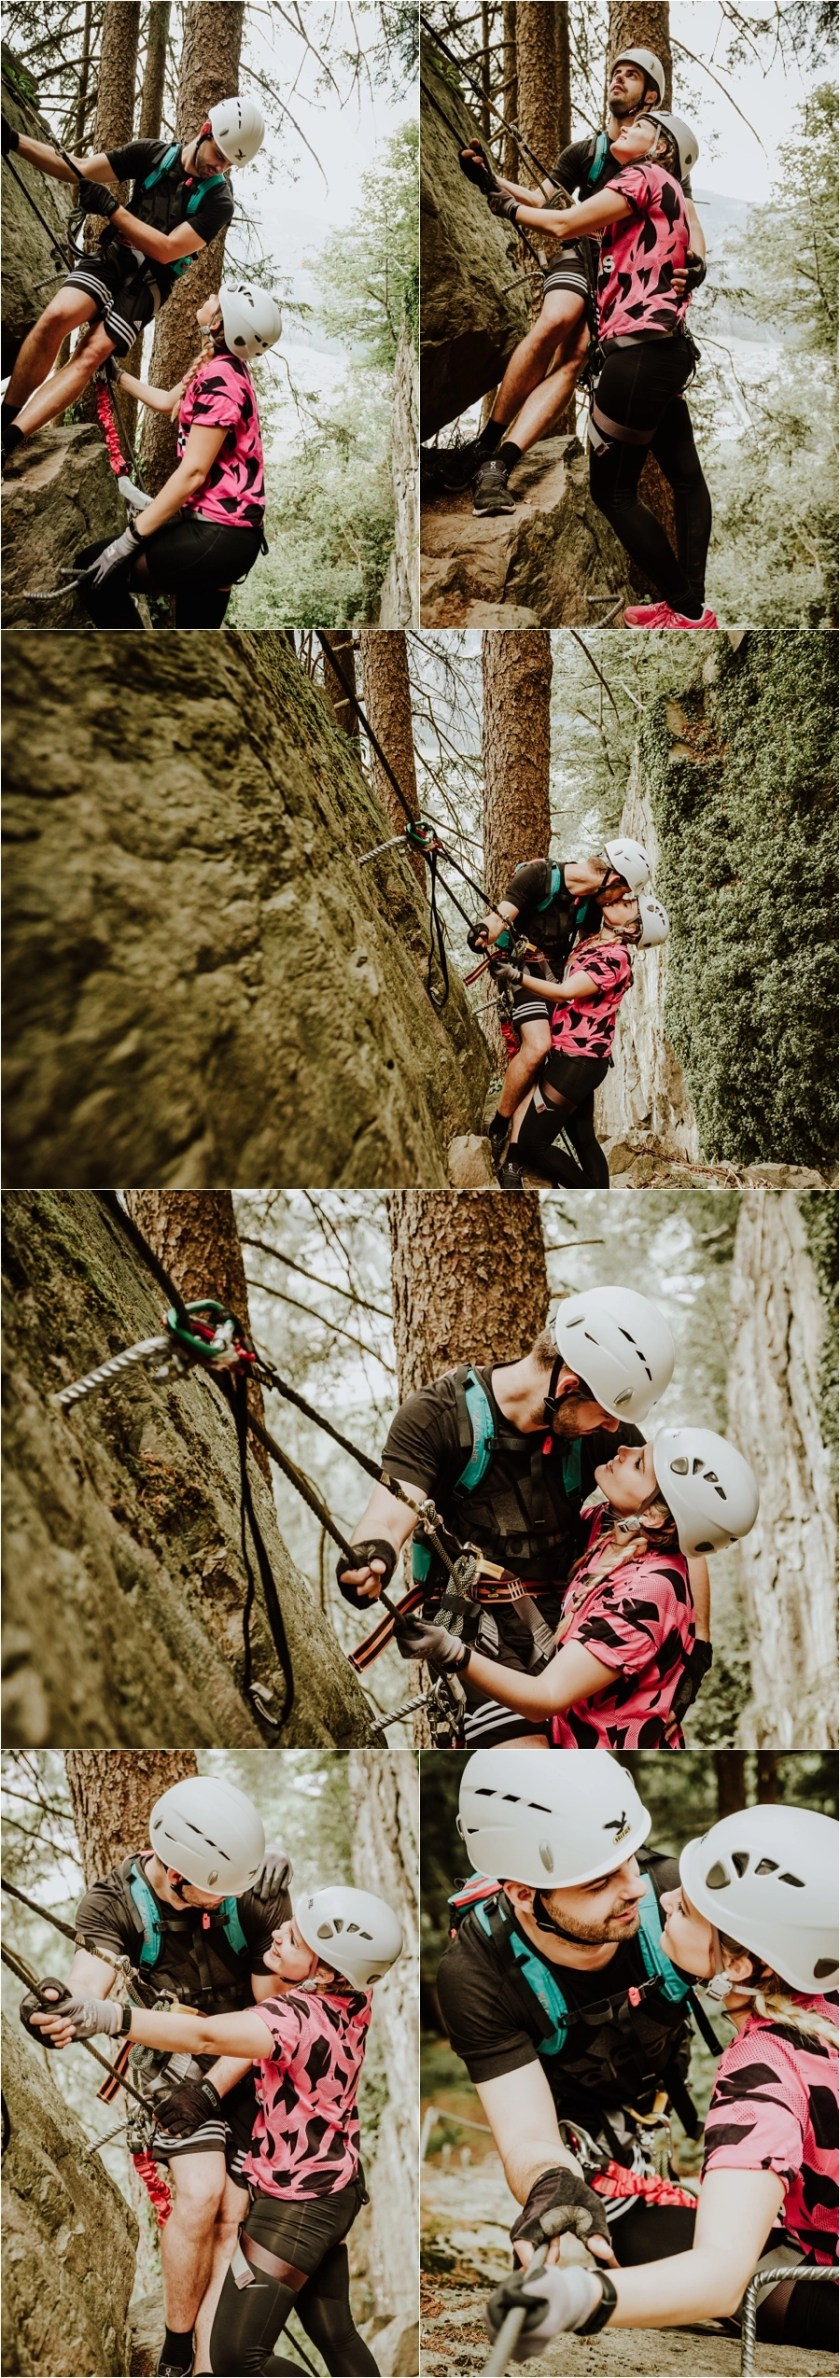 Climbing engagement shoot on a via ferrata by Wild Connections Photography